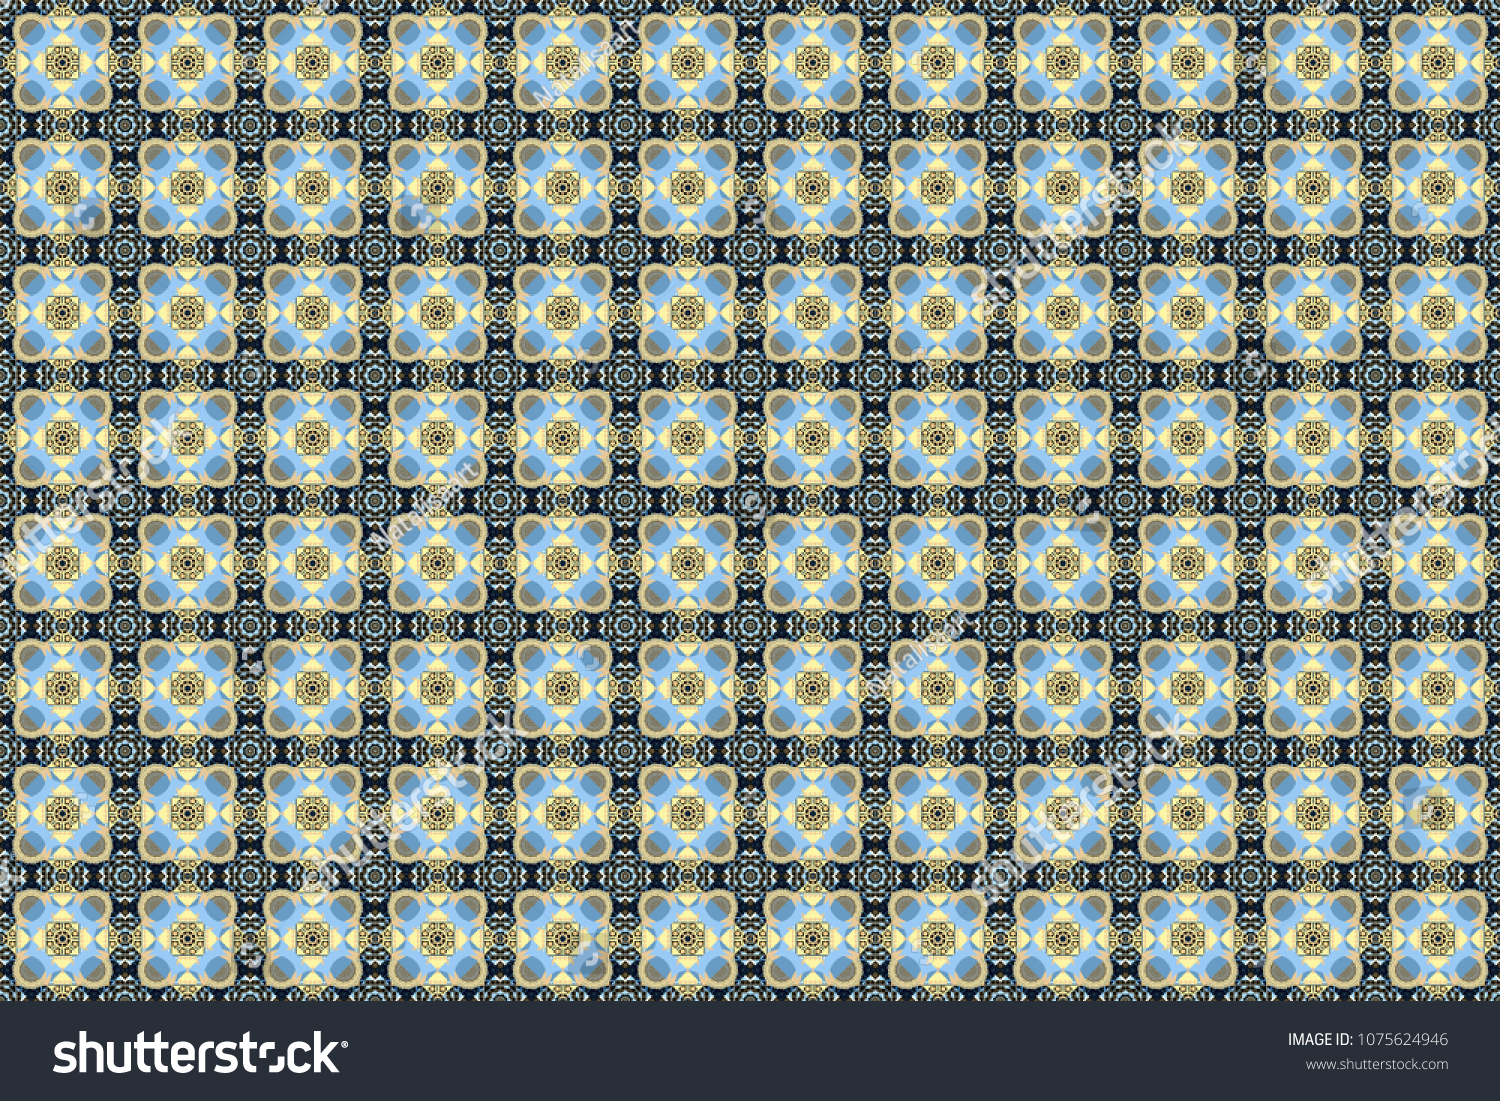 Geometric Repeating Wallpaper Raster Abstract Holographic Seamless Pattern In Blue